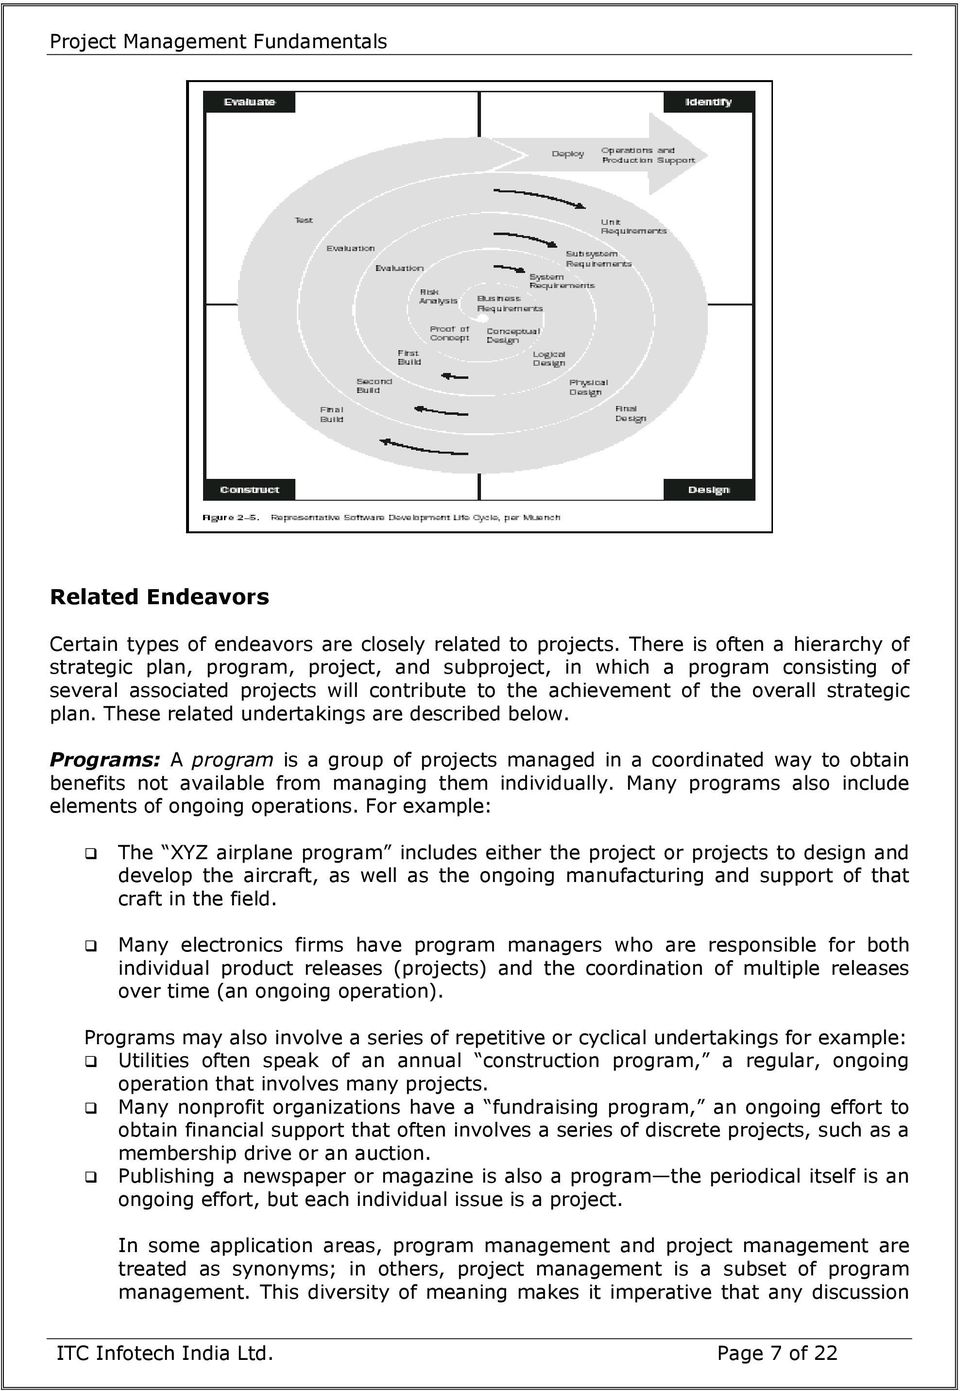 strategic plan. These related undertakings are described below.